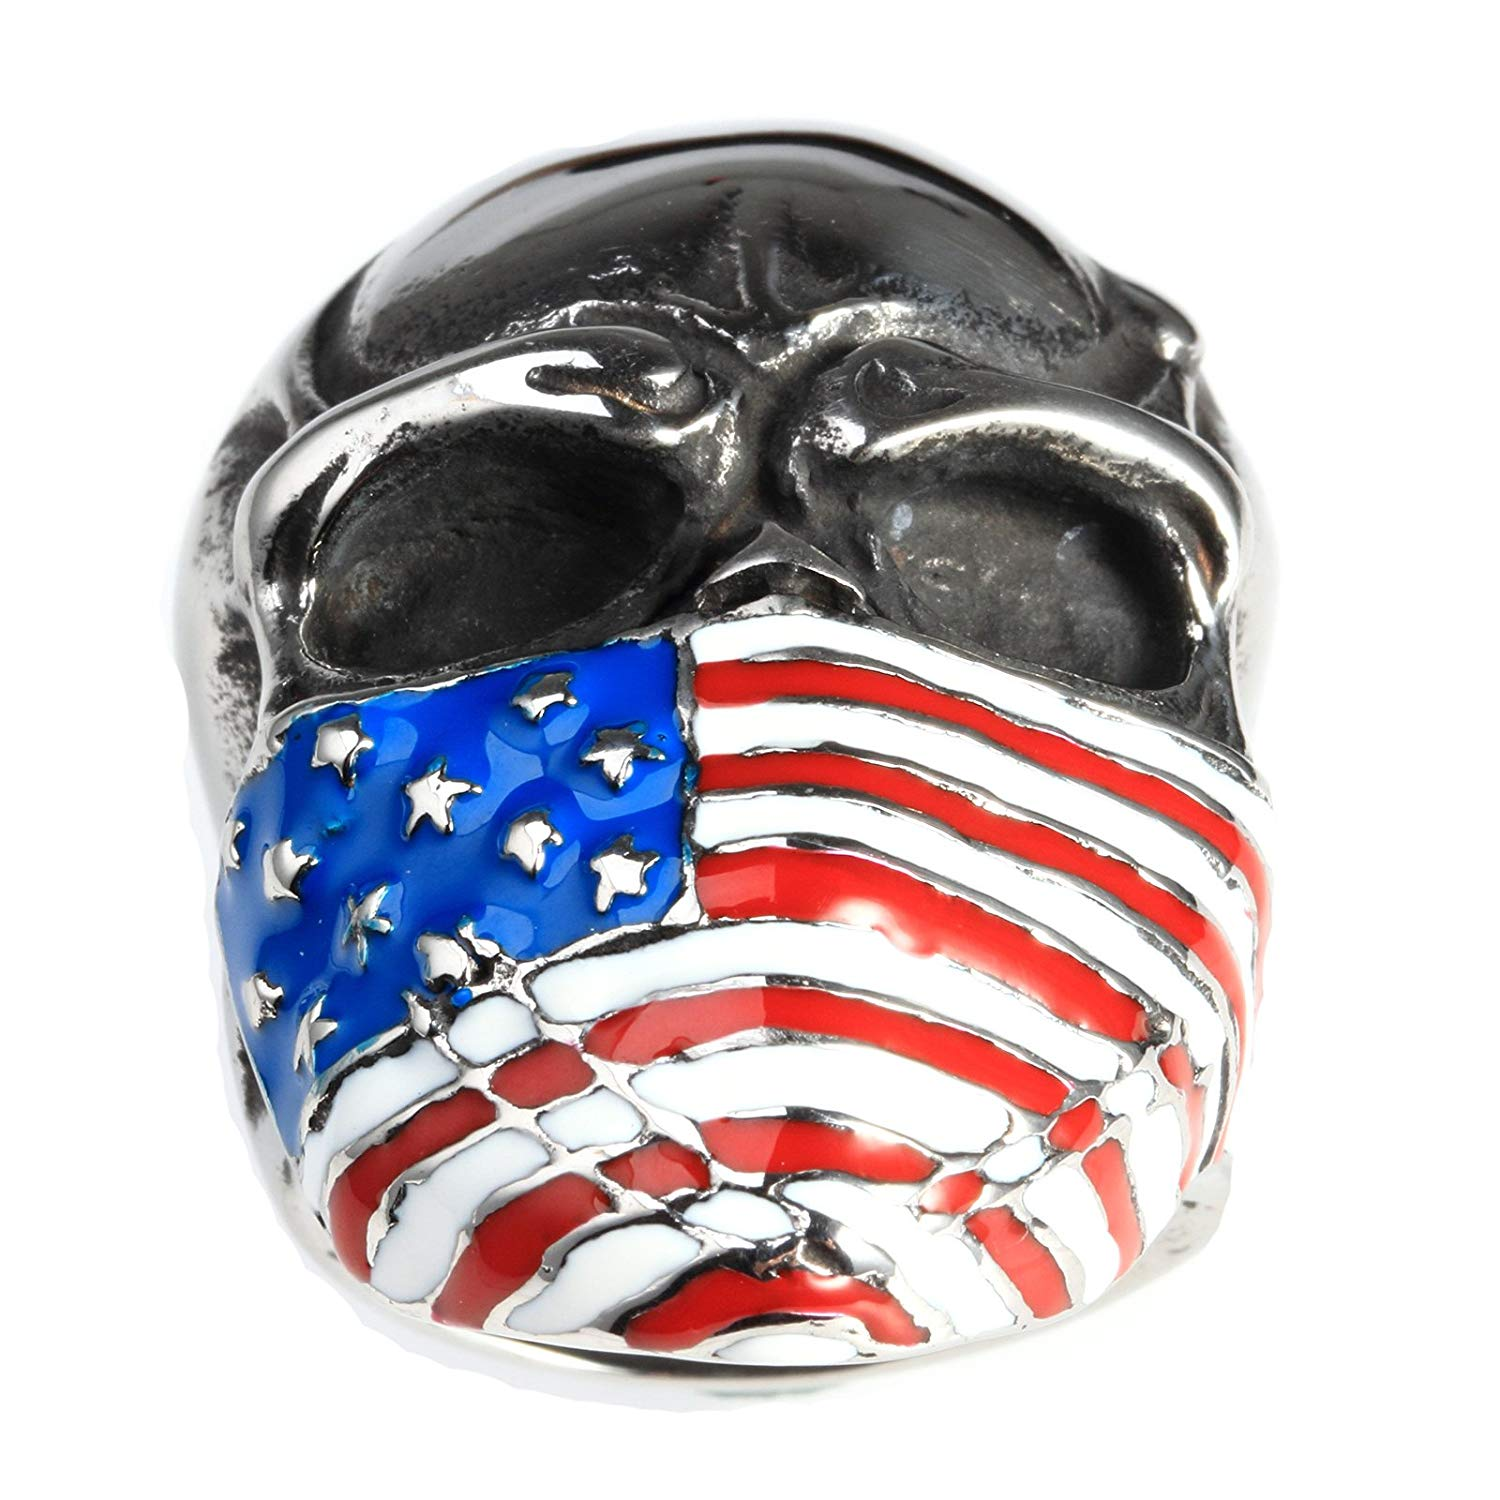 Beydodo Necklace for Men Stainless Steel Native American Indian Chief Skull Pendant Hip Hop Necklaces for Men